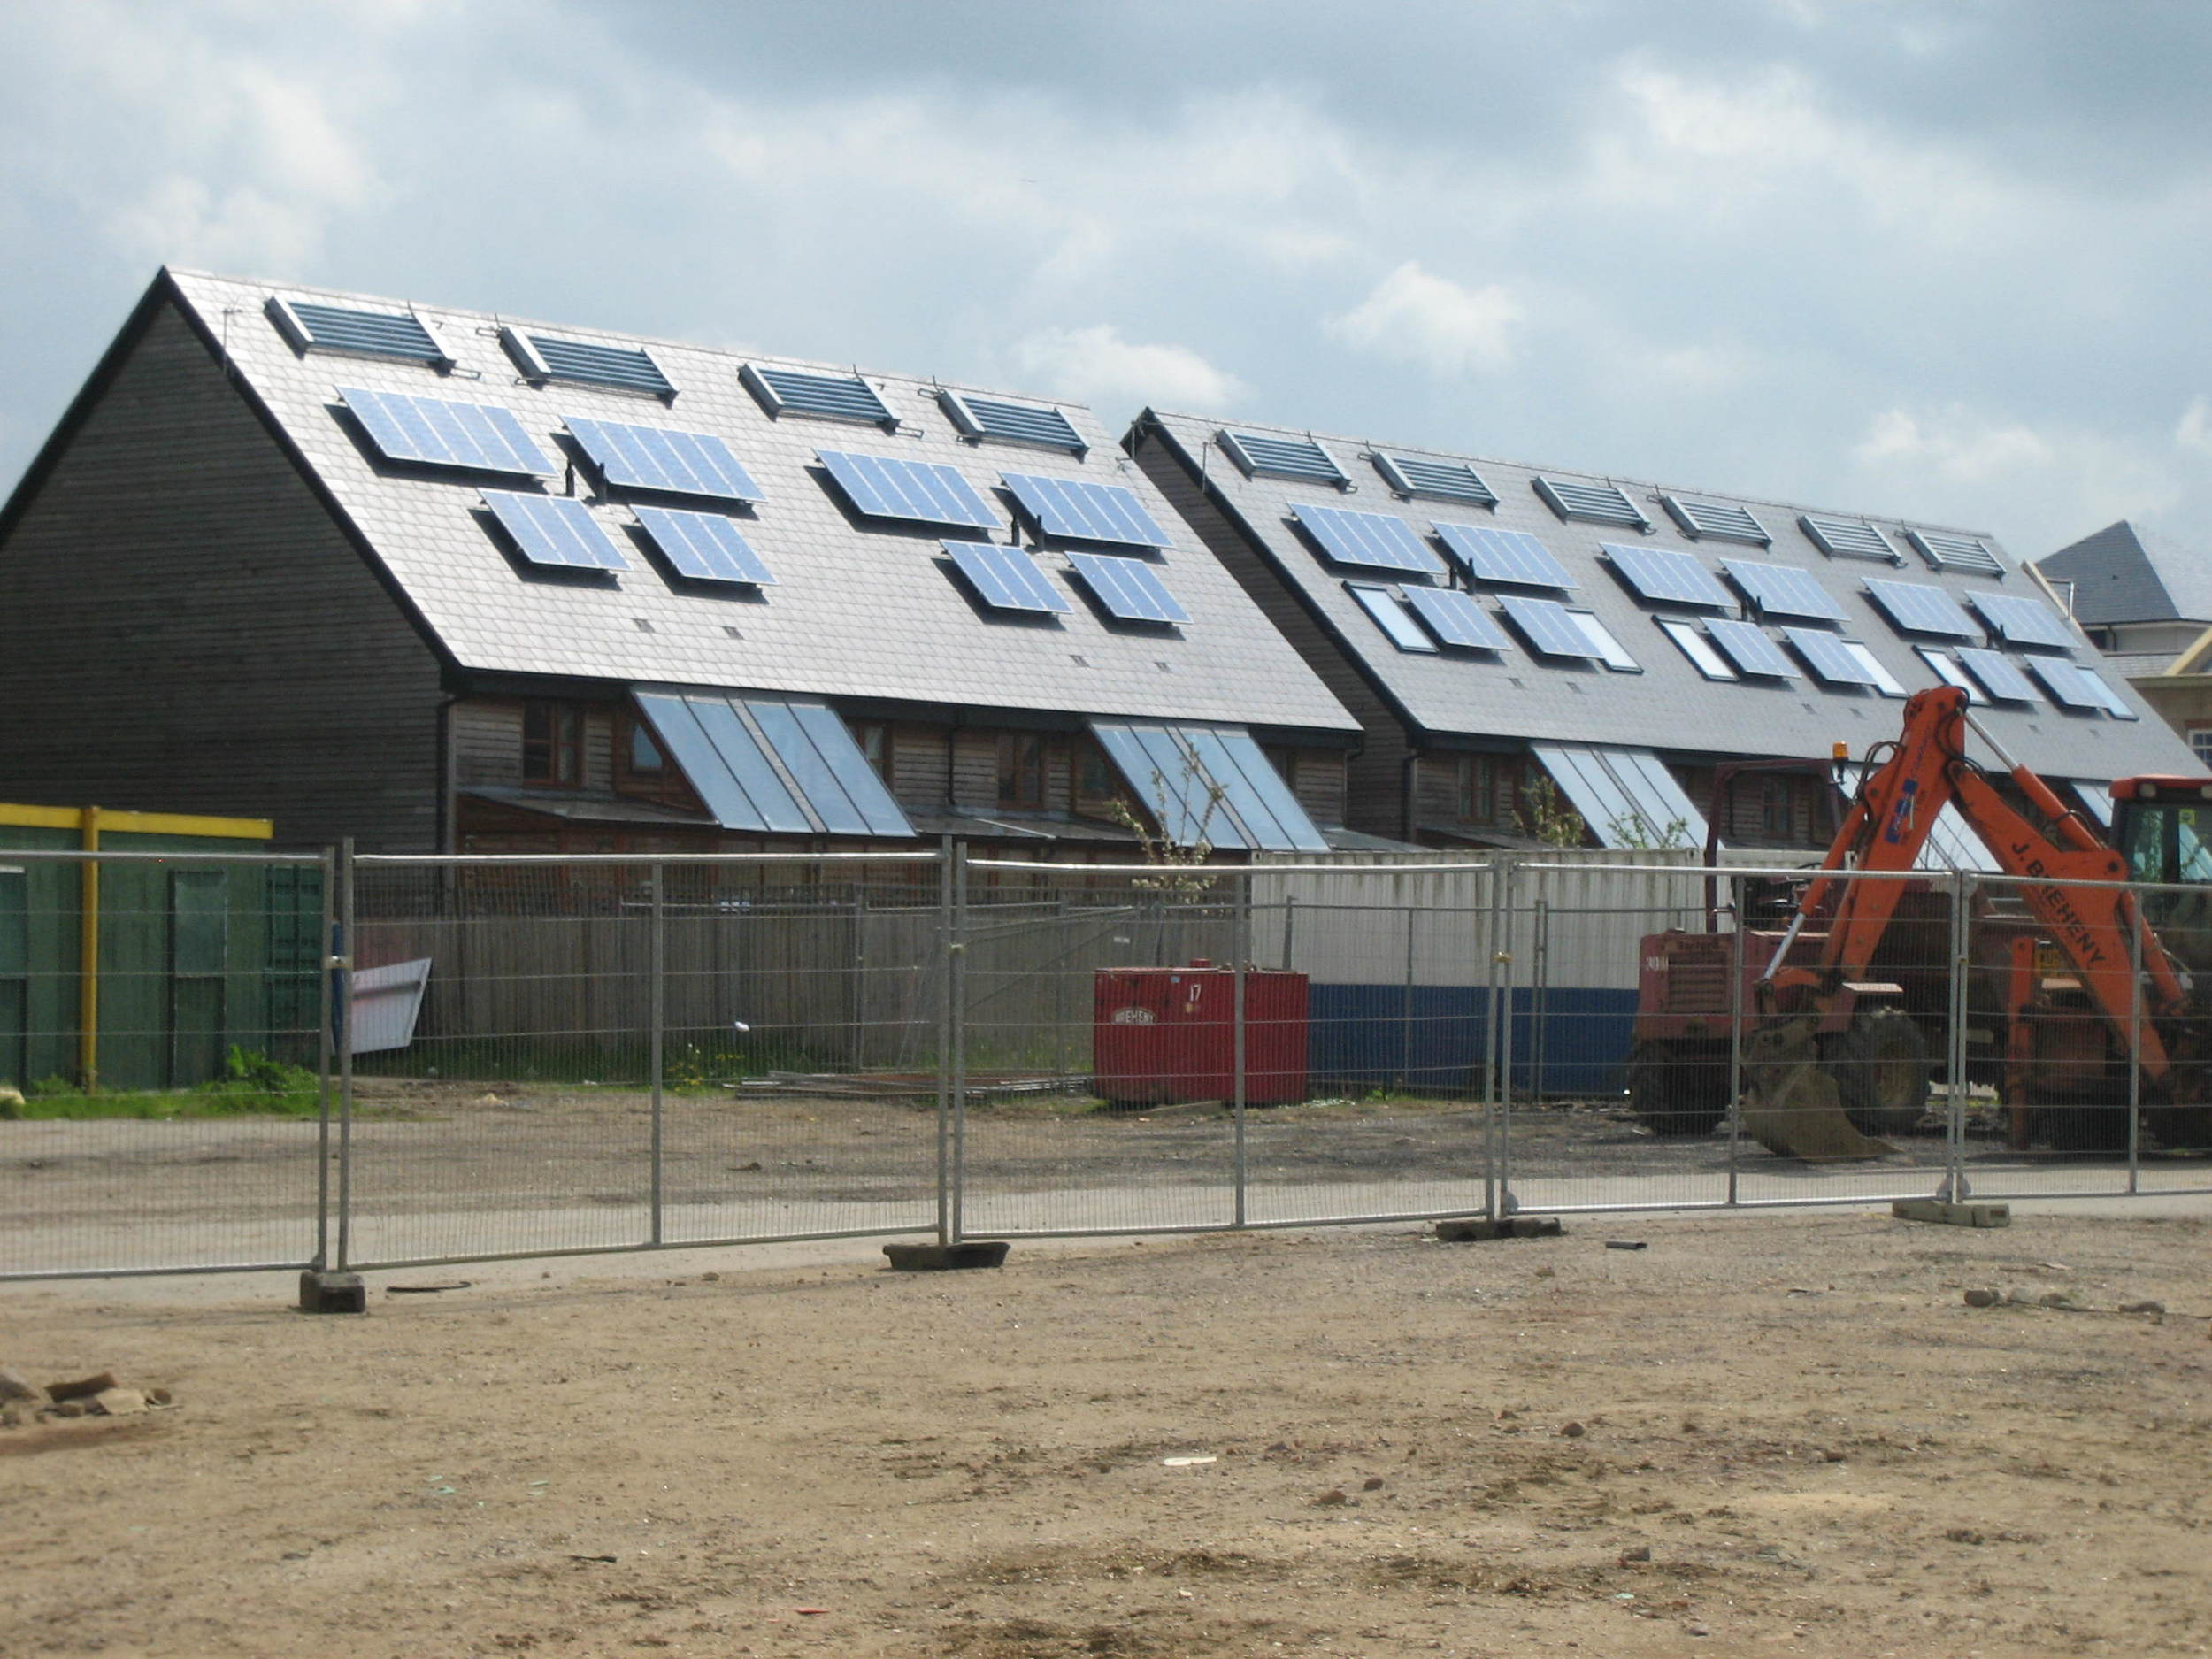 Solar evacuated tube and PV modules mounted above the roof plane - Cambourne.JPG